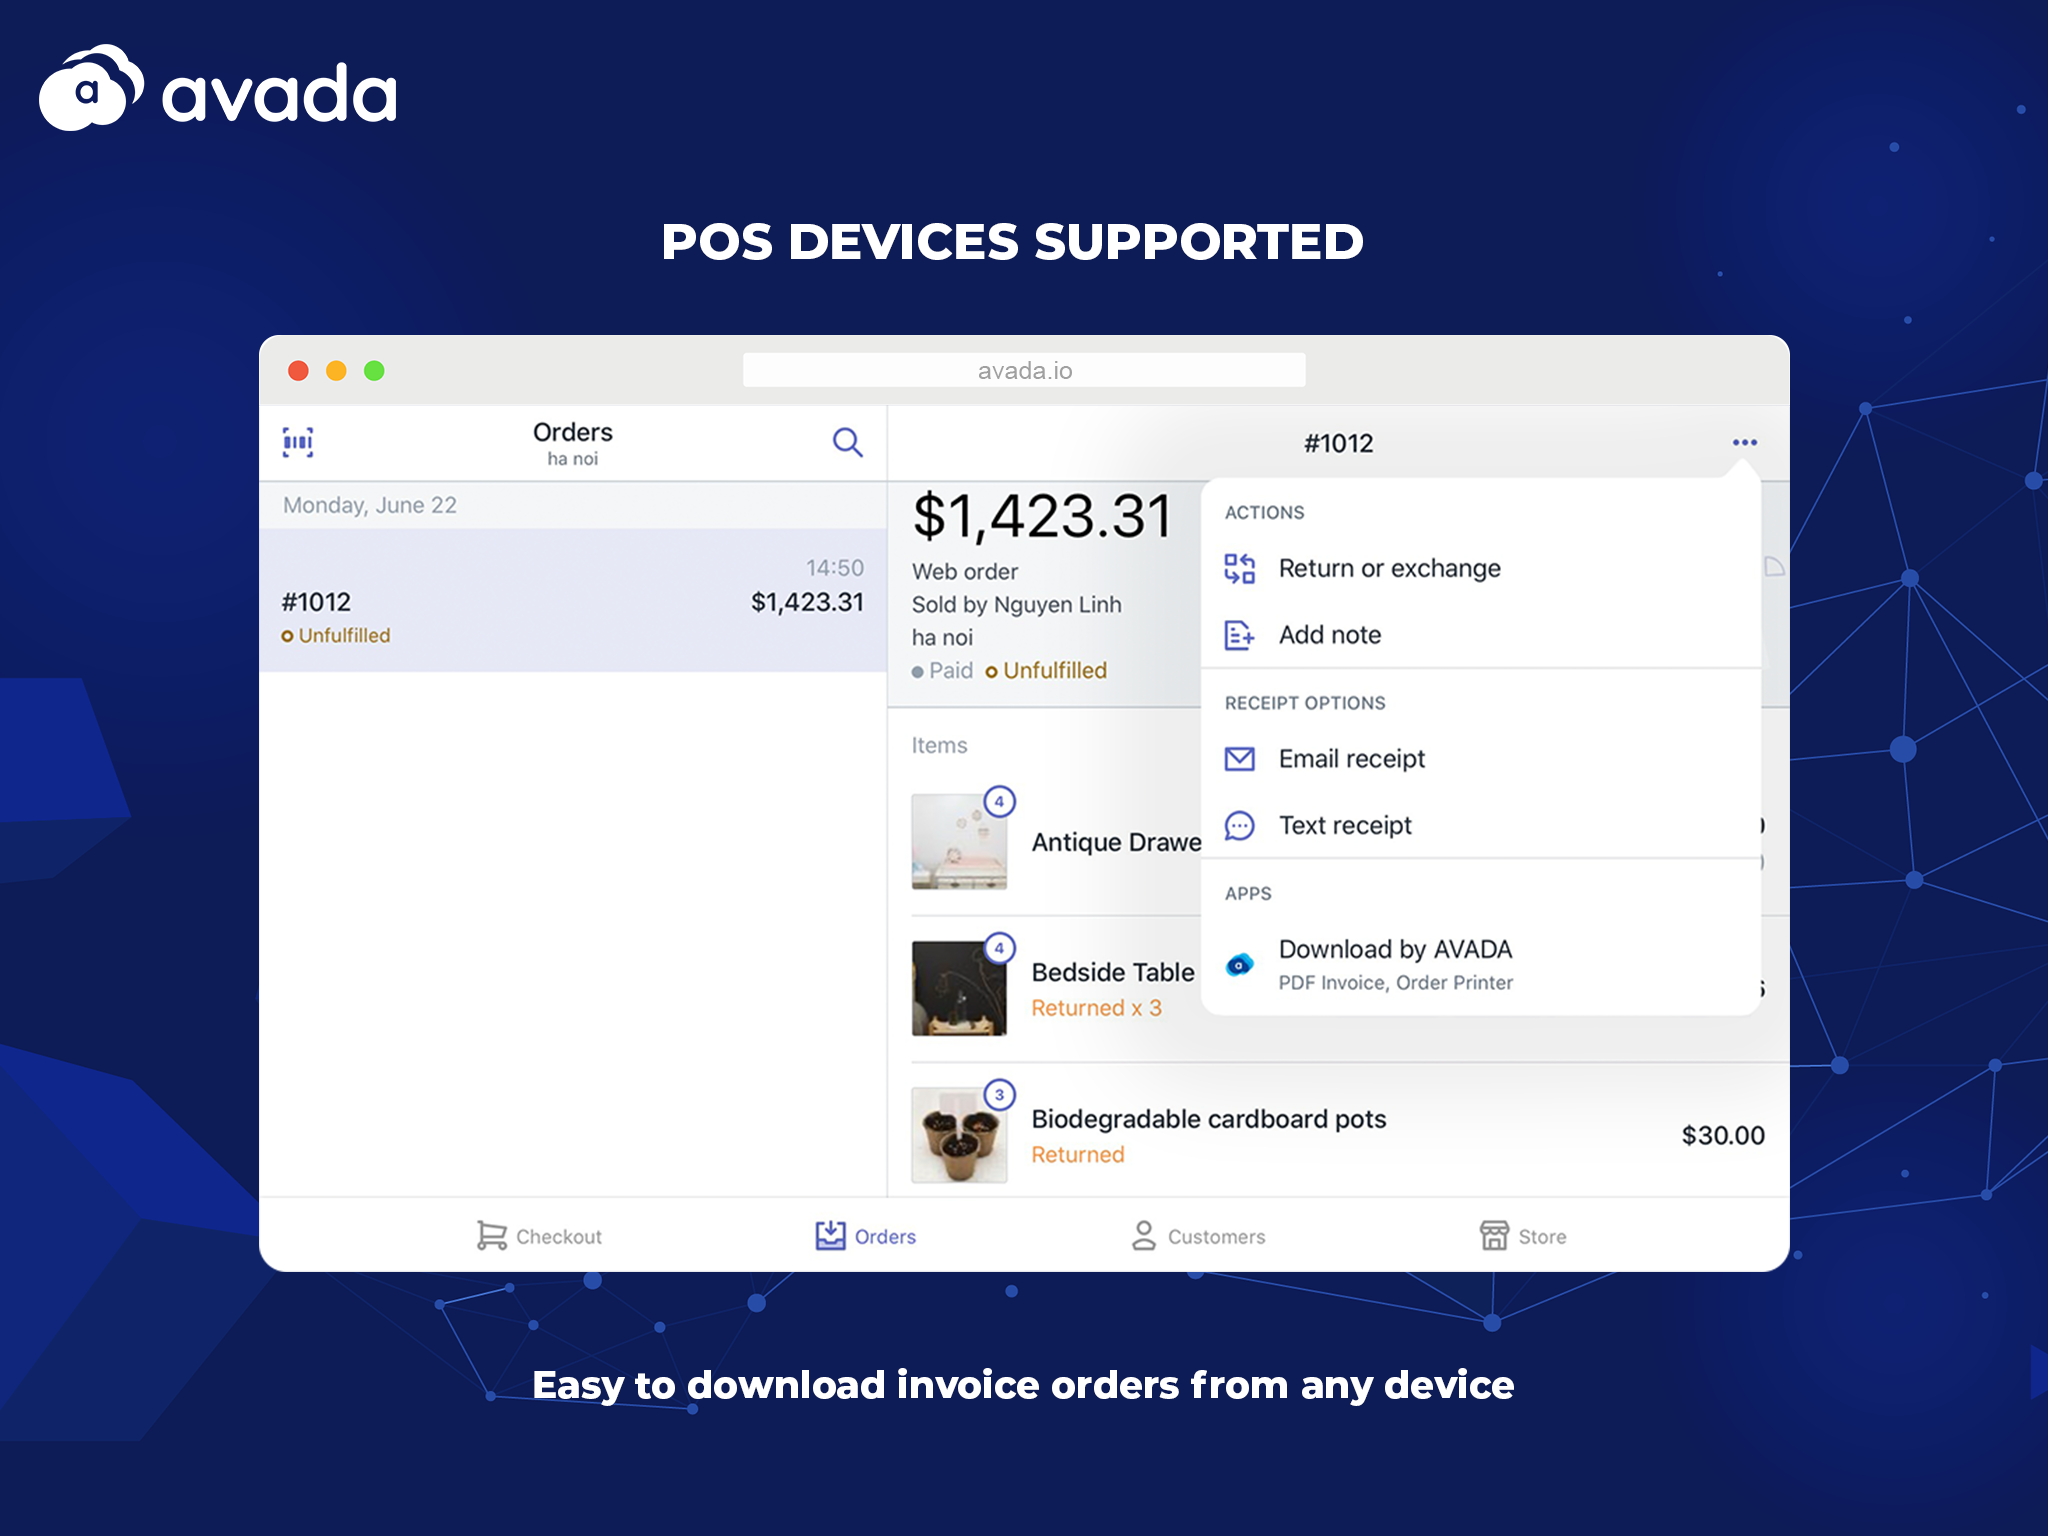 POS devices supported